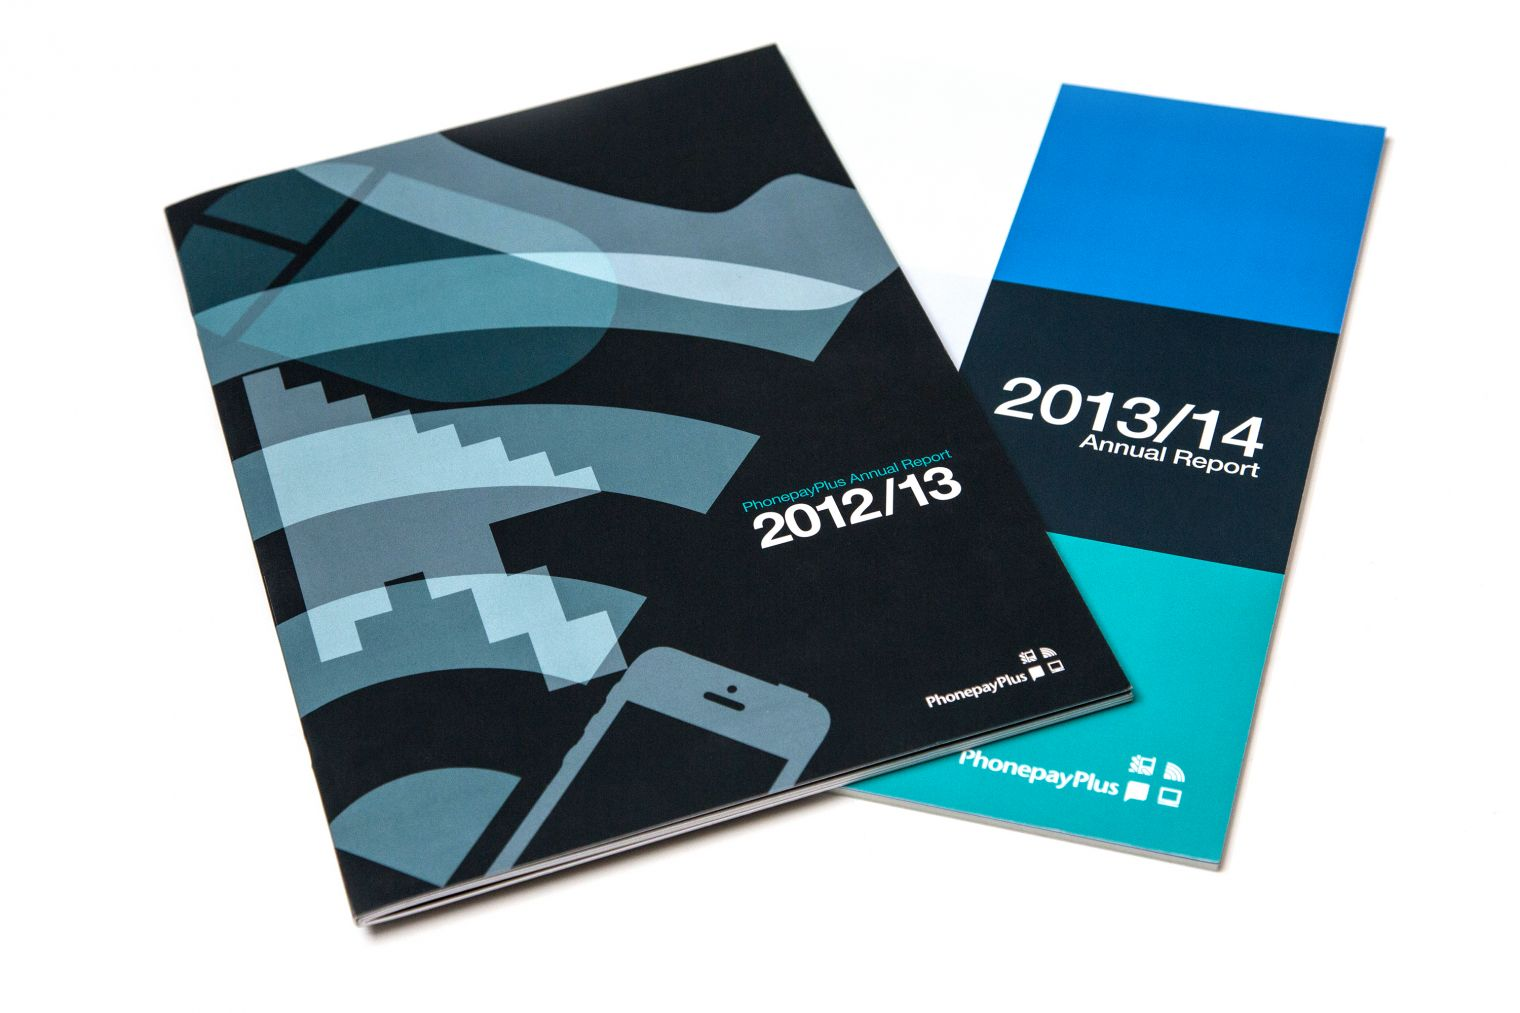 Annual Report cover designs